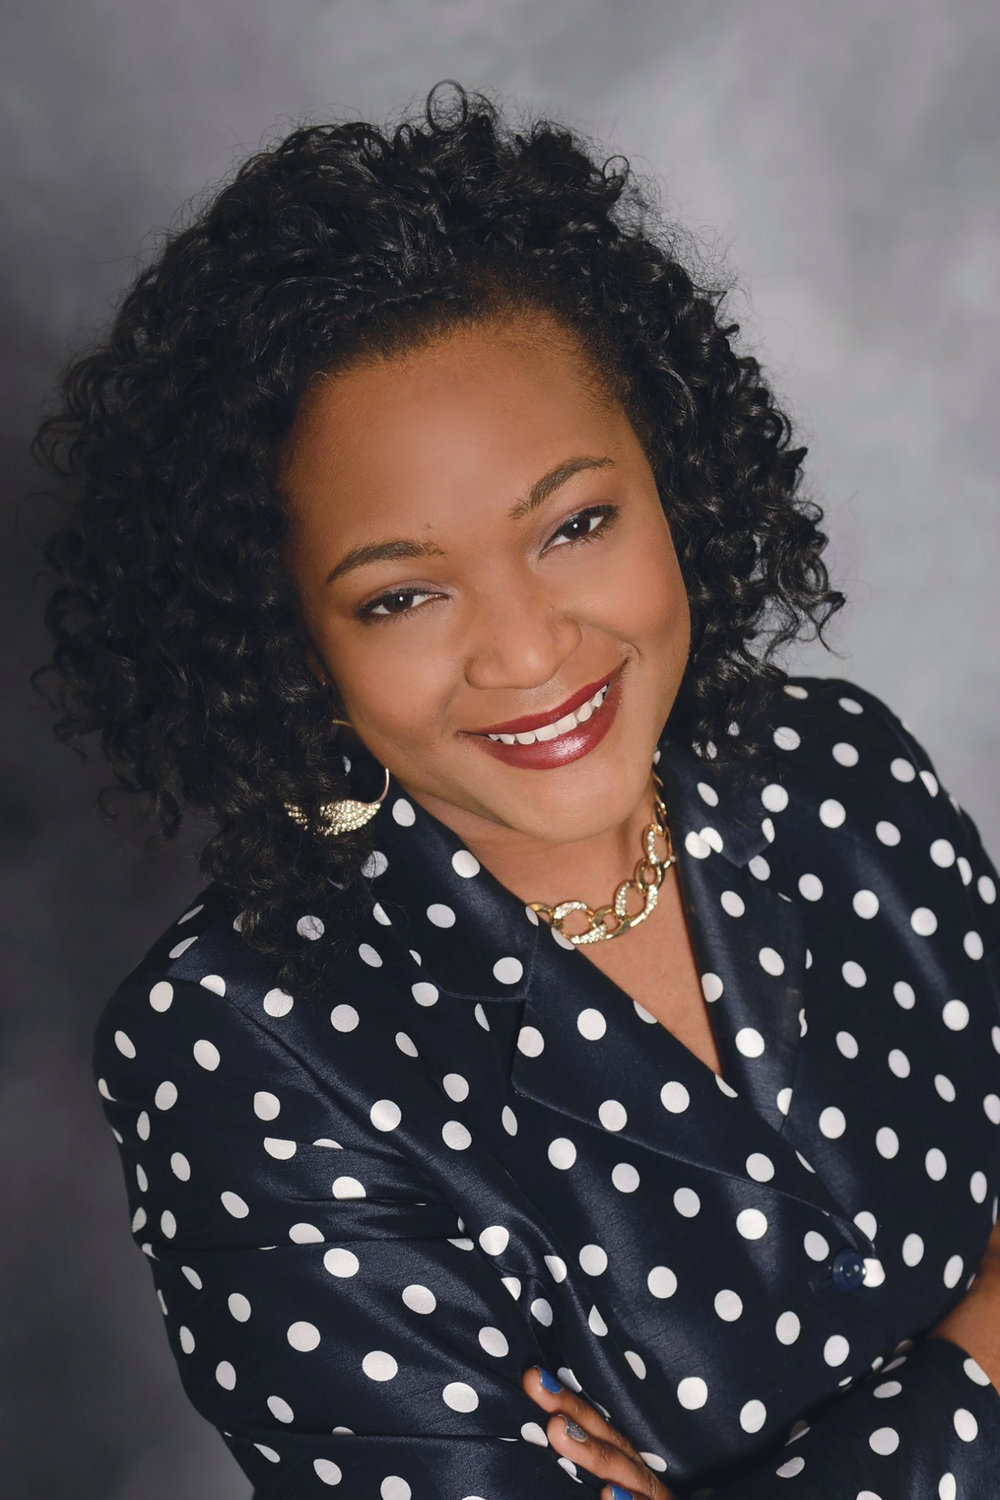 Khalilah Long, Communications Manager for UNCF writes on topics including critical topics surrounding K-12 Advocacy including education reform, academic standards, teacher diversity, high-quality charters, school choice.